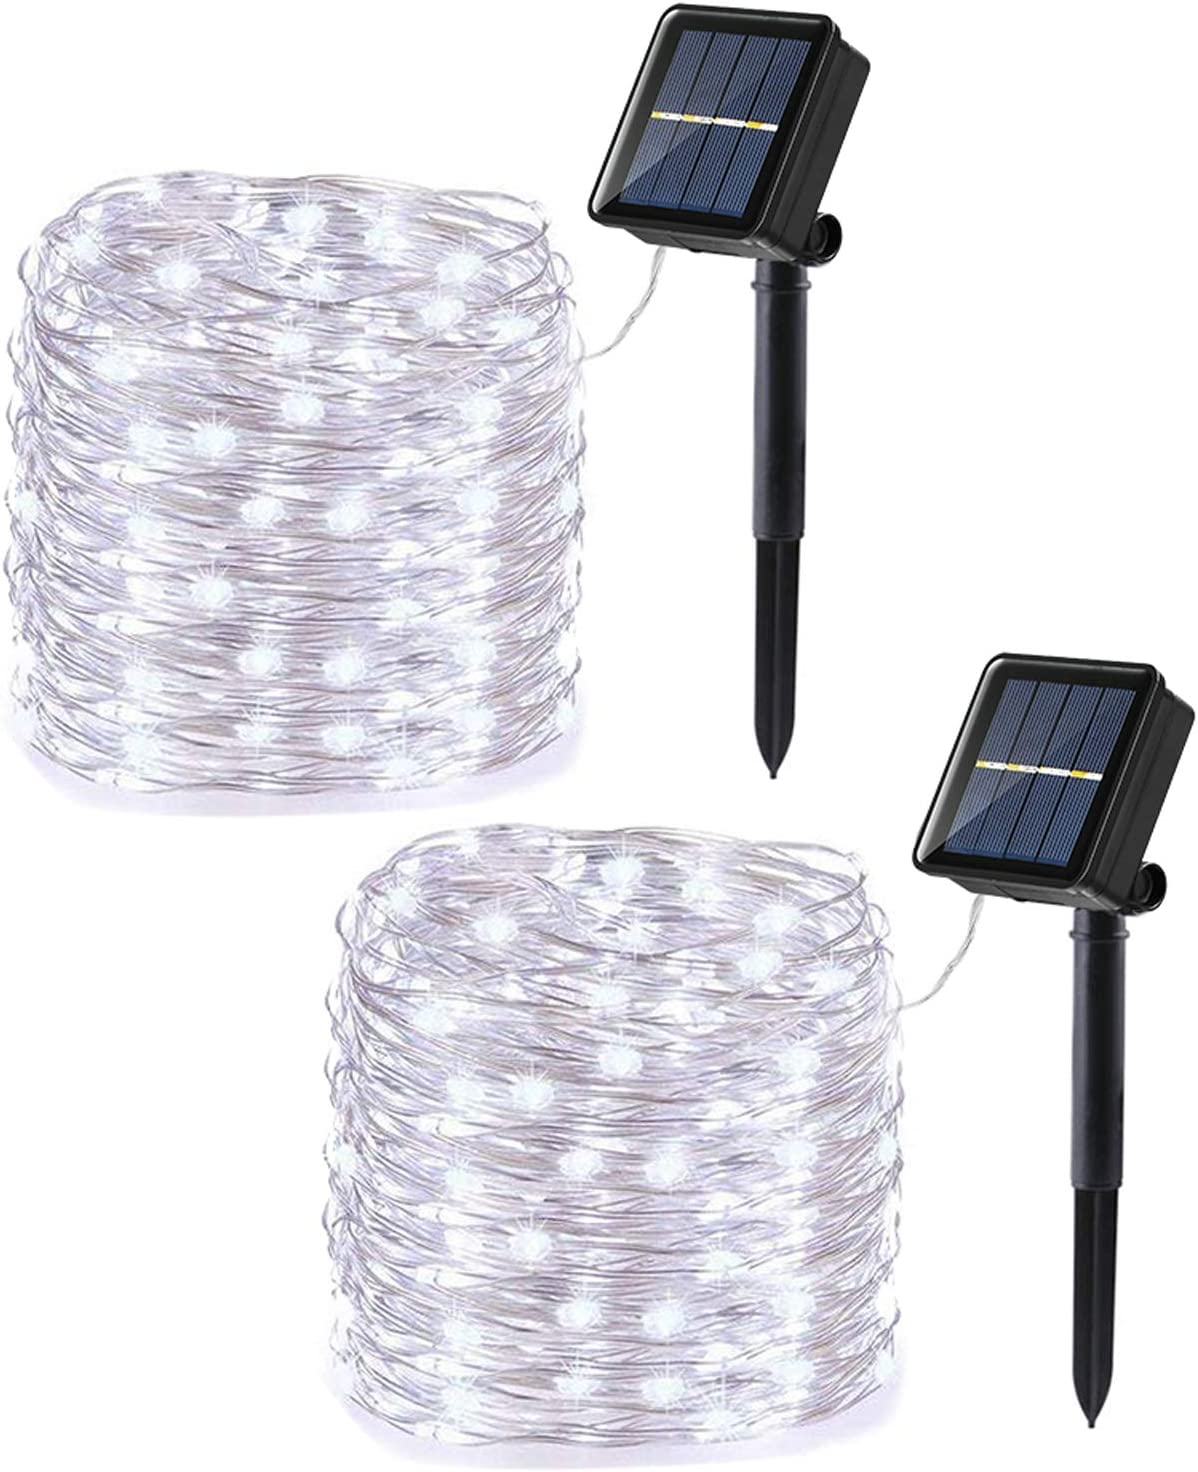 Joomer Upgraded Solar String Lights, 2 Pack 39ft 120LED 8 Modes Silver Wire Outdoor String Lights, Waterproof Solar Rope Lights for Patio, Garden, Yard, Party, Wedding Decoration (White)